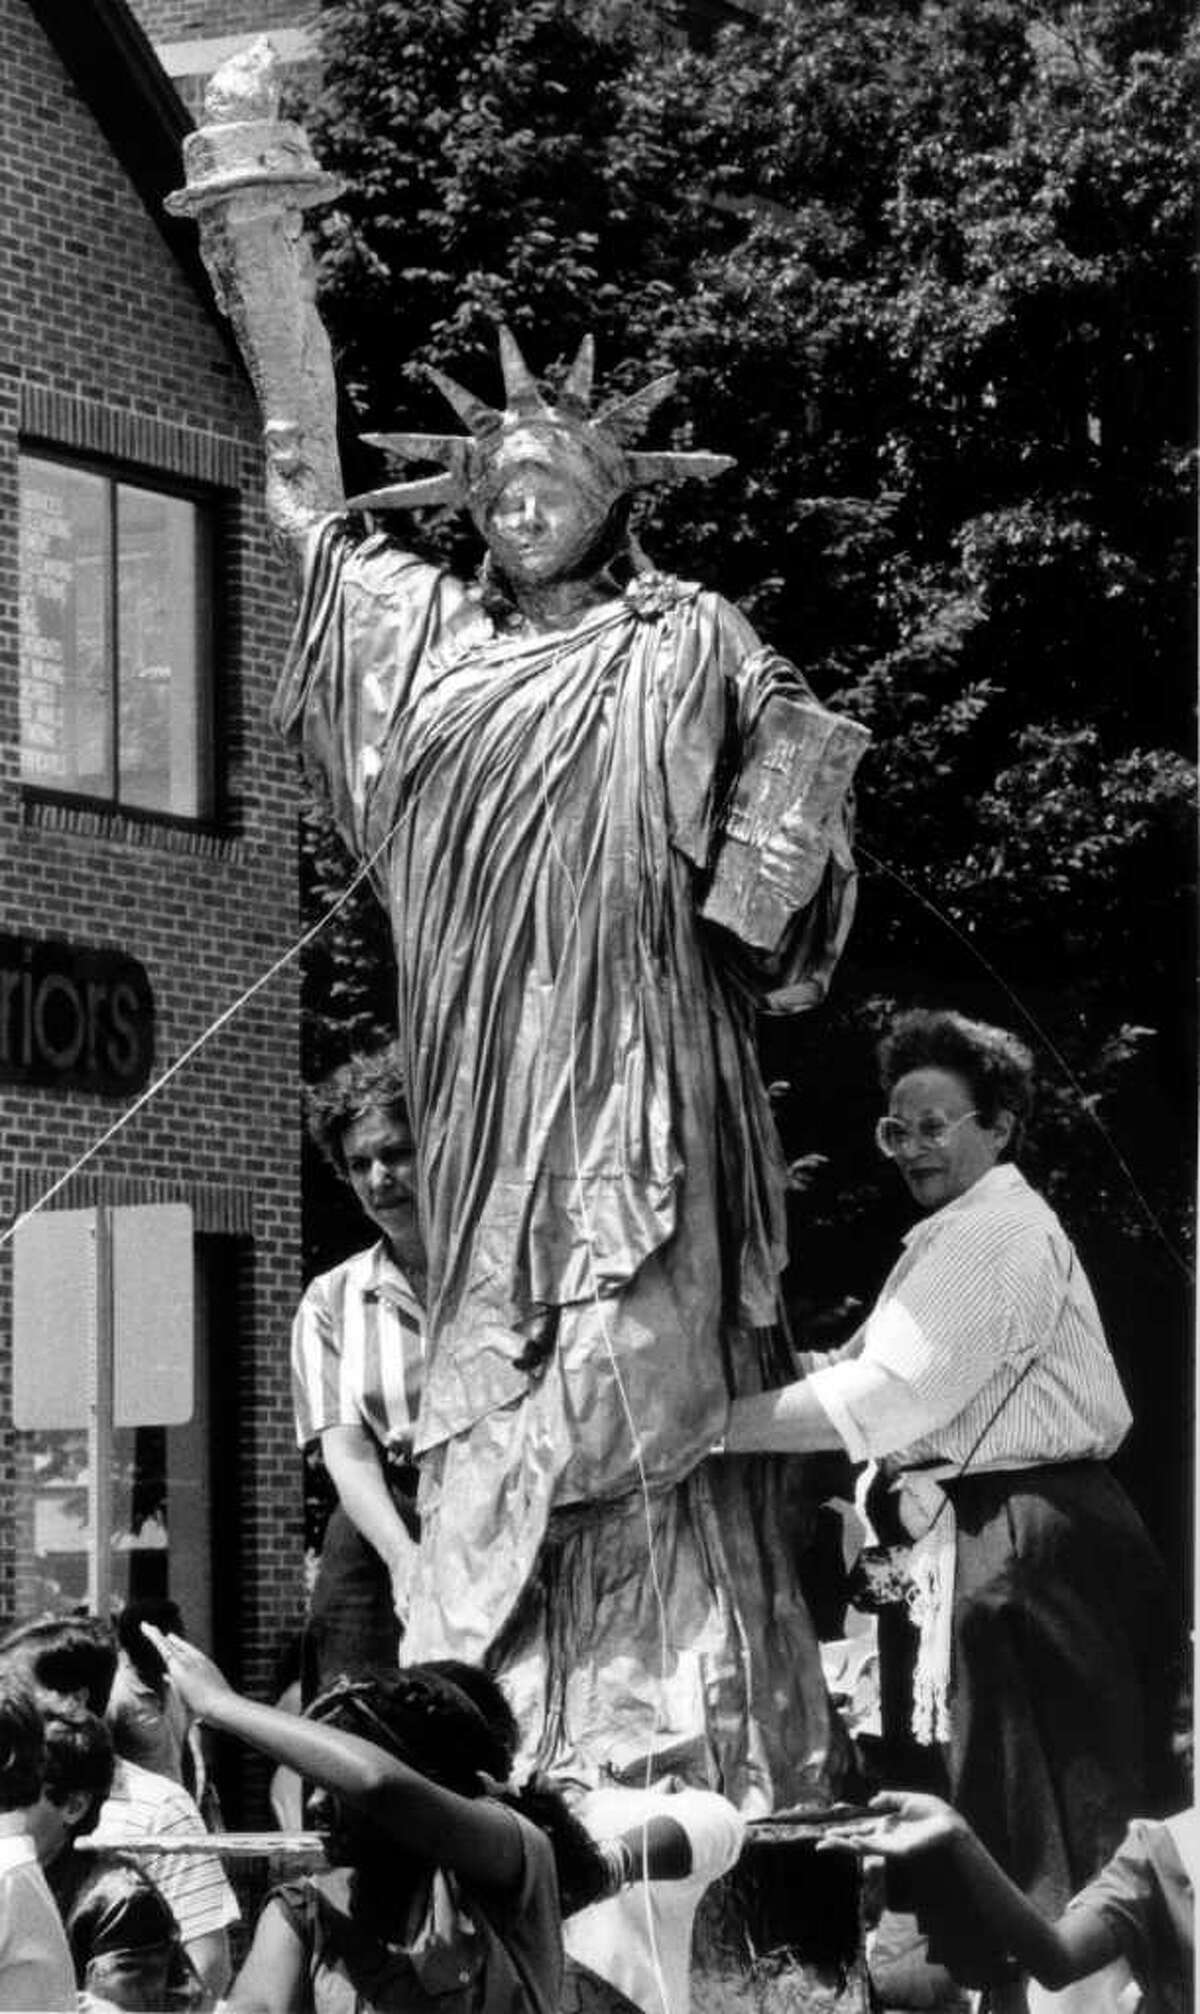 May 25, 1986: Turn of River Middle School's Statue of Liberty float in Stamford's Memorial Day parade.